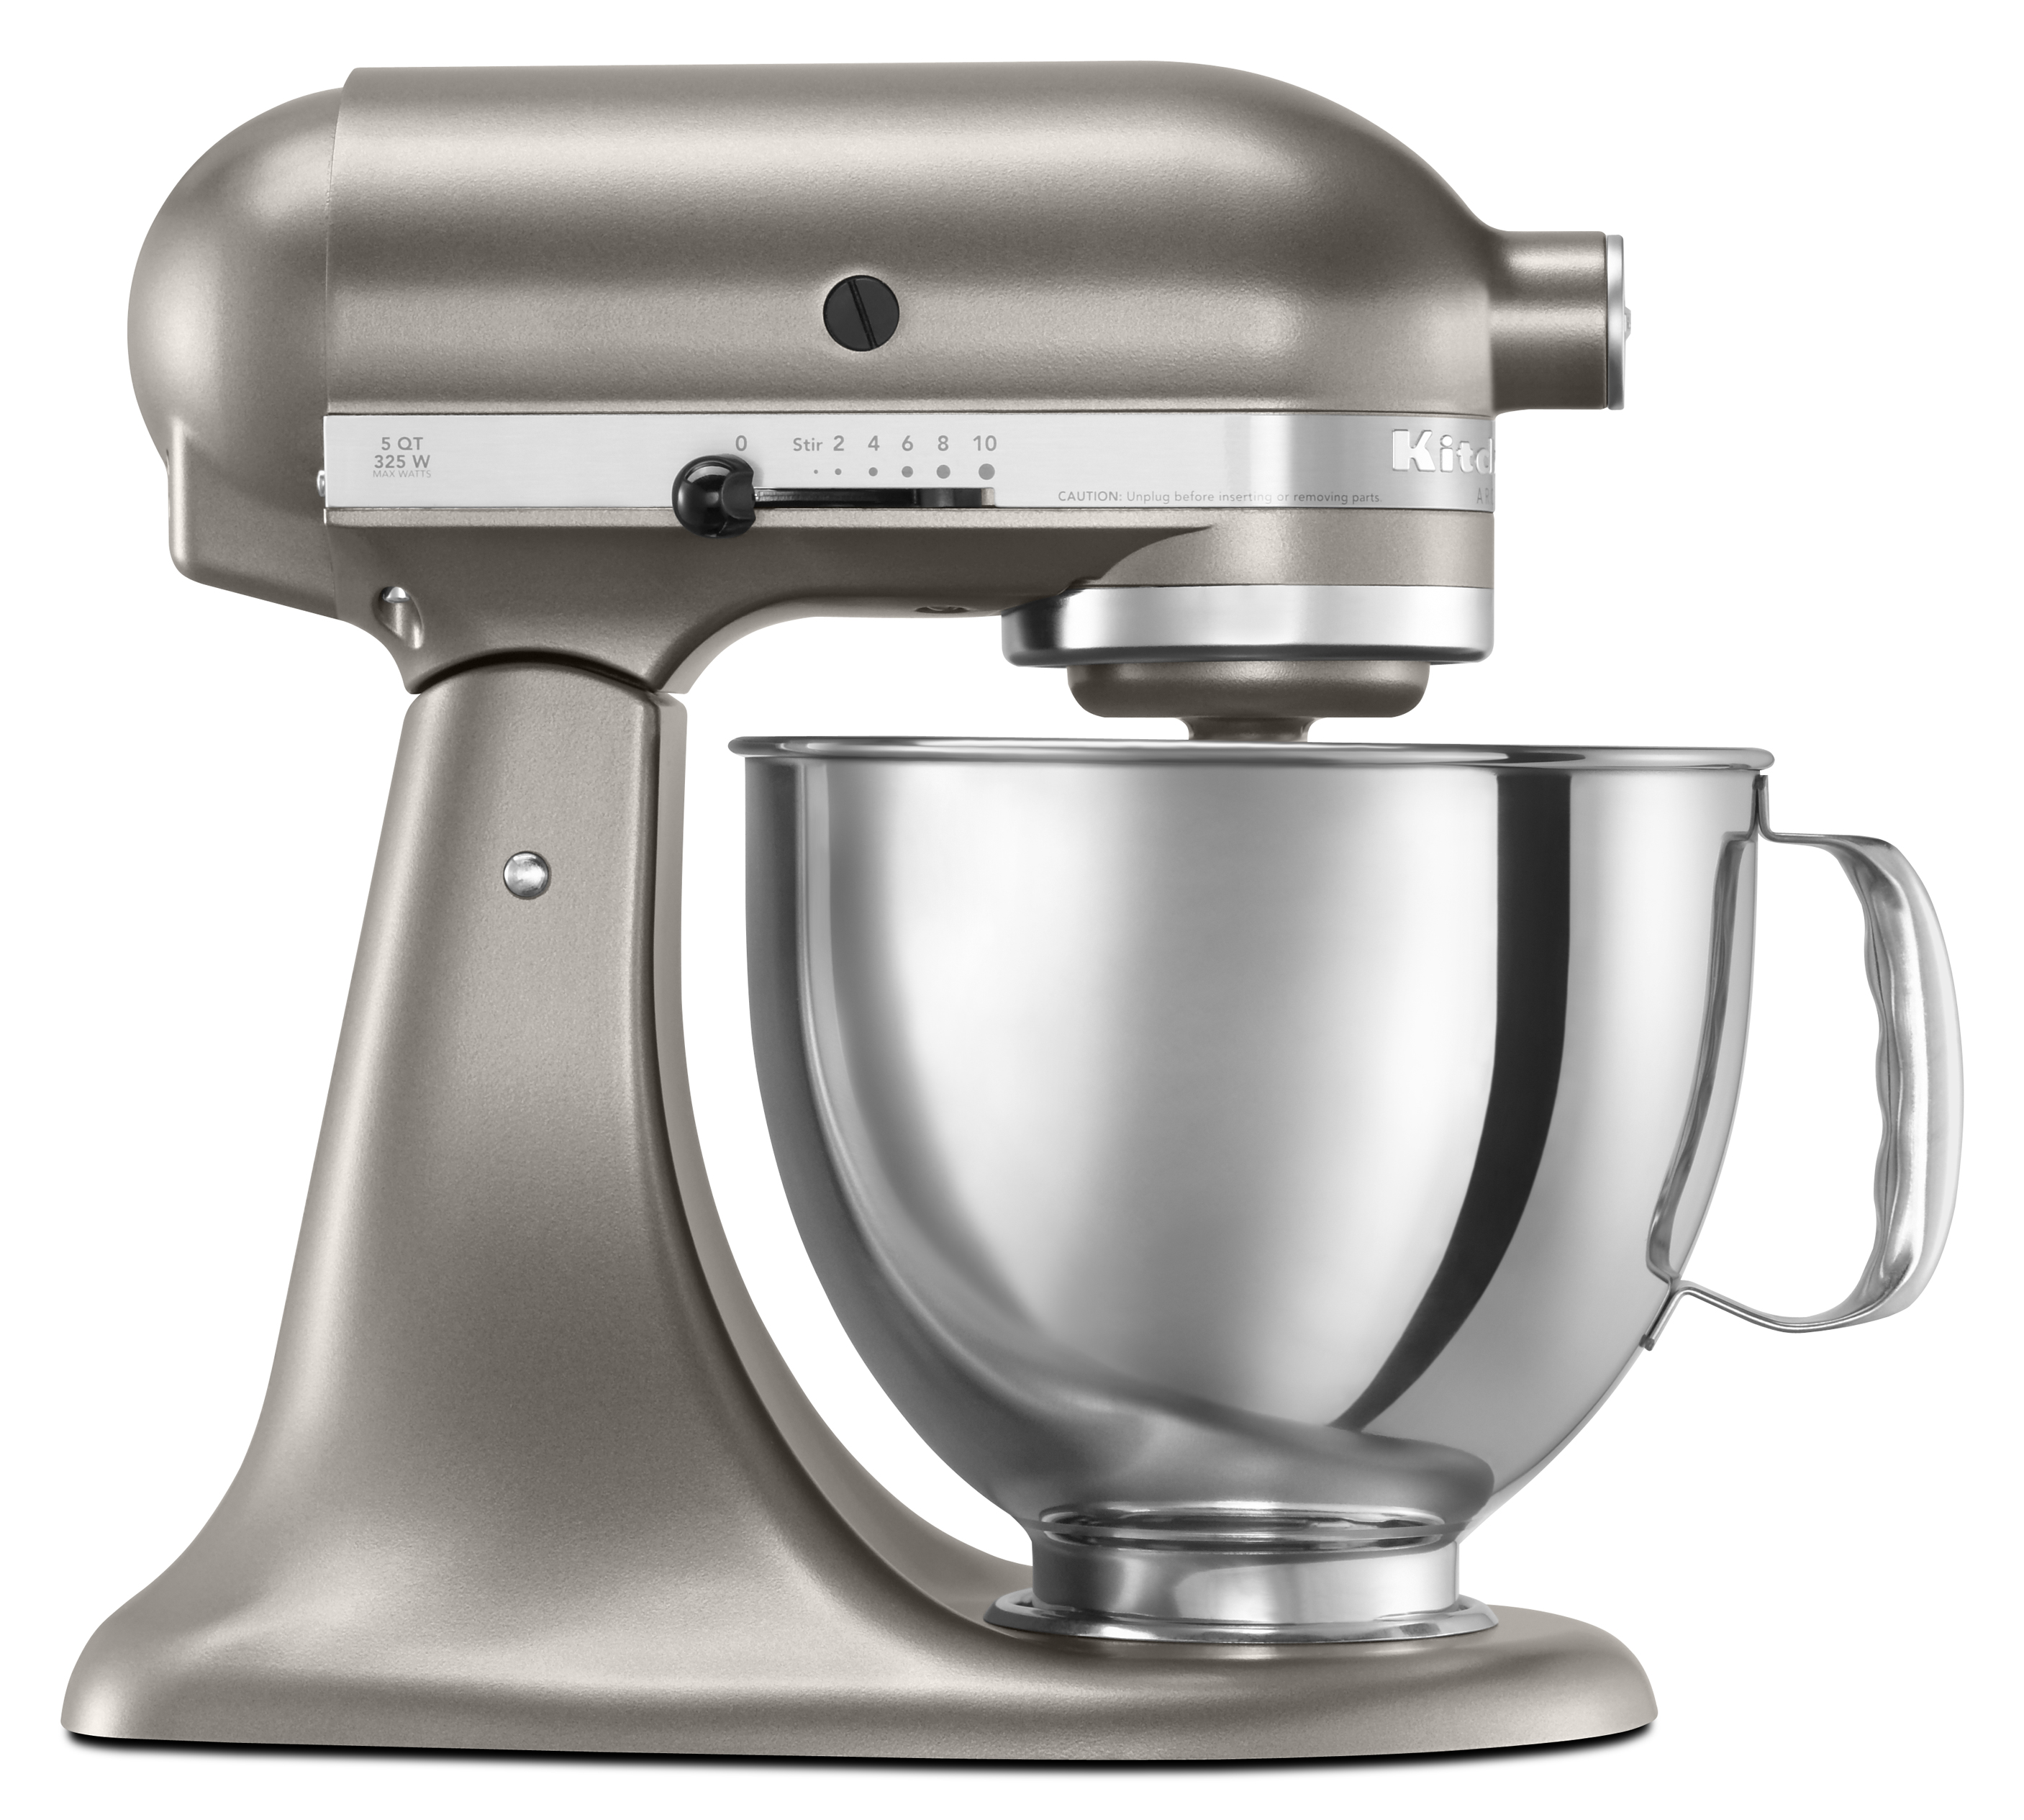 White kitchenaid stand mixer photo - 2